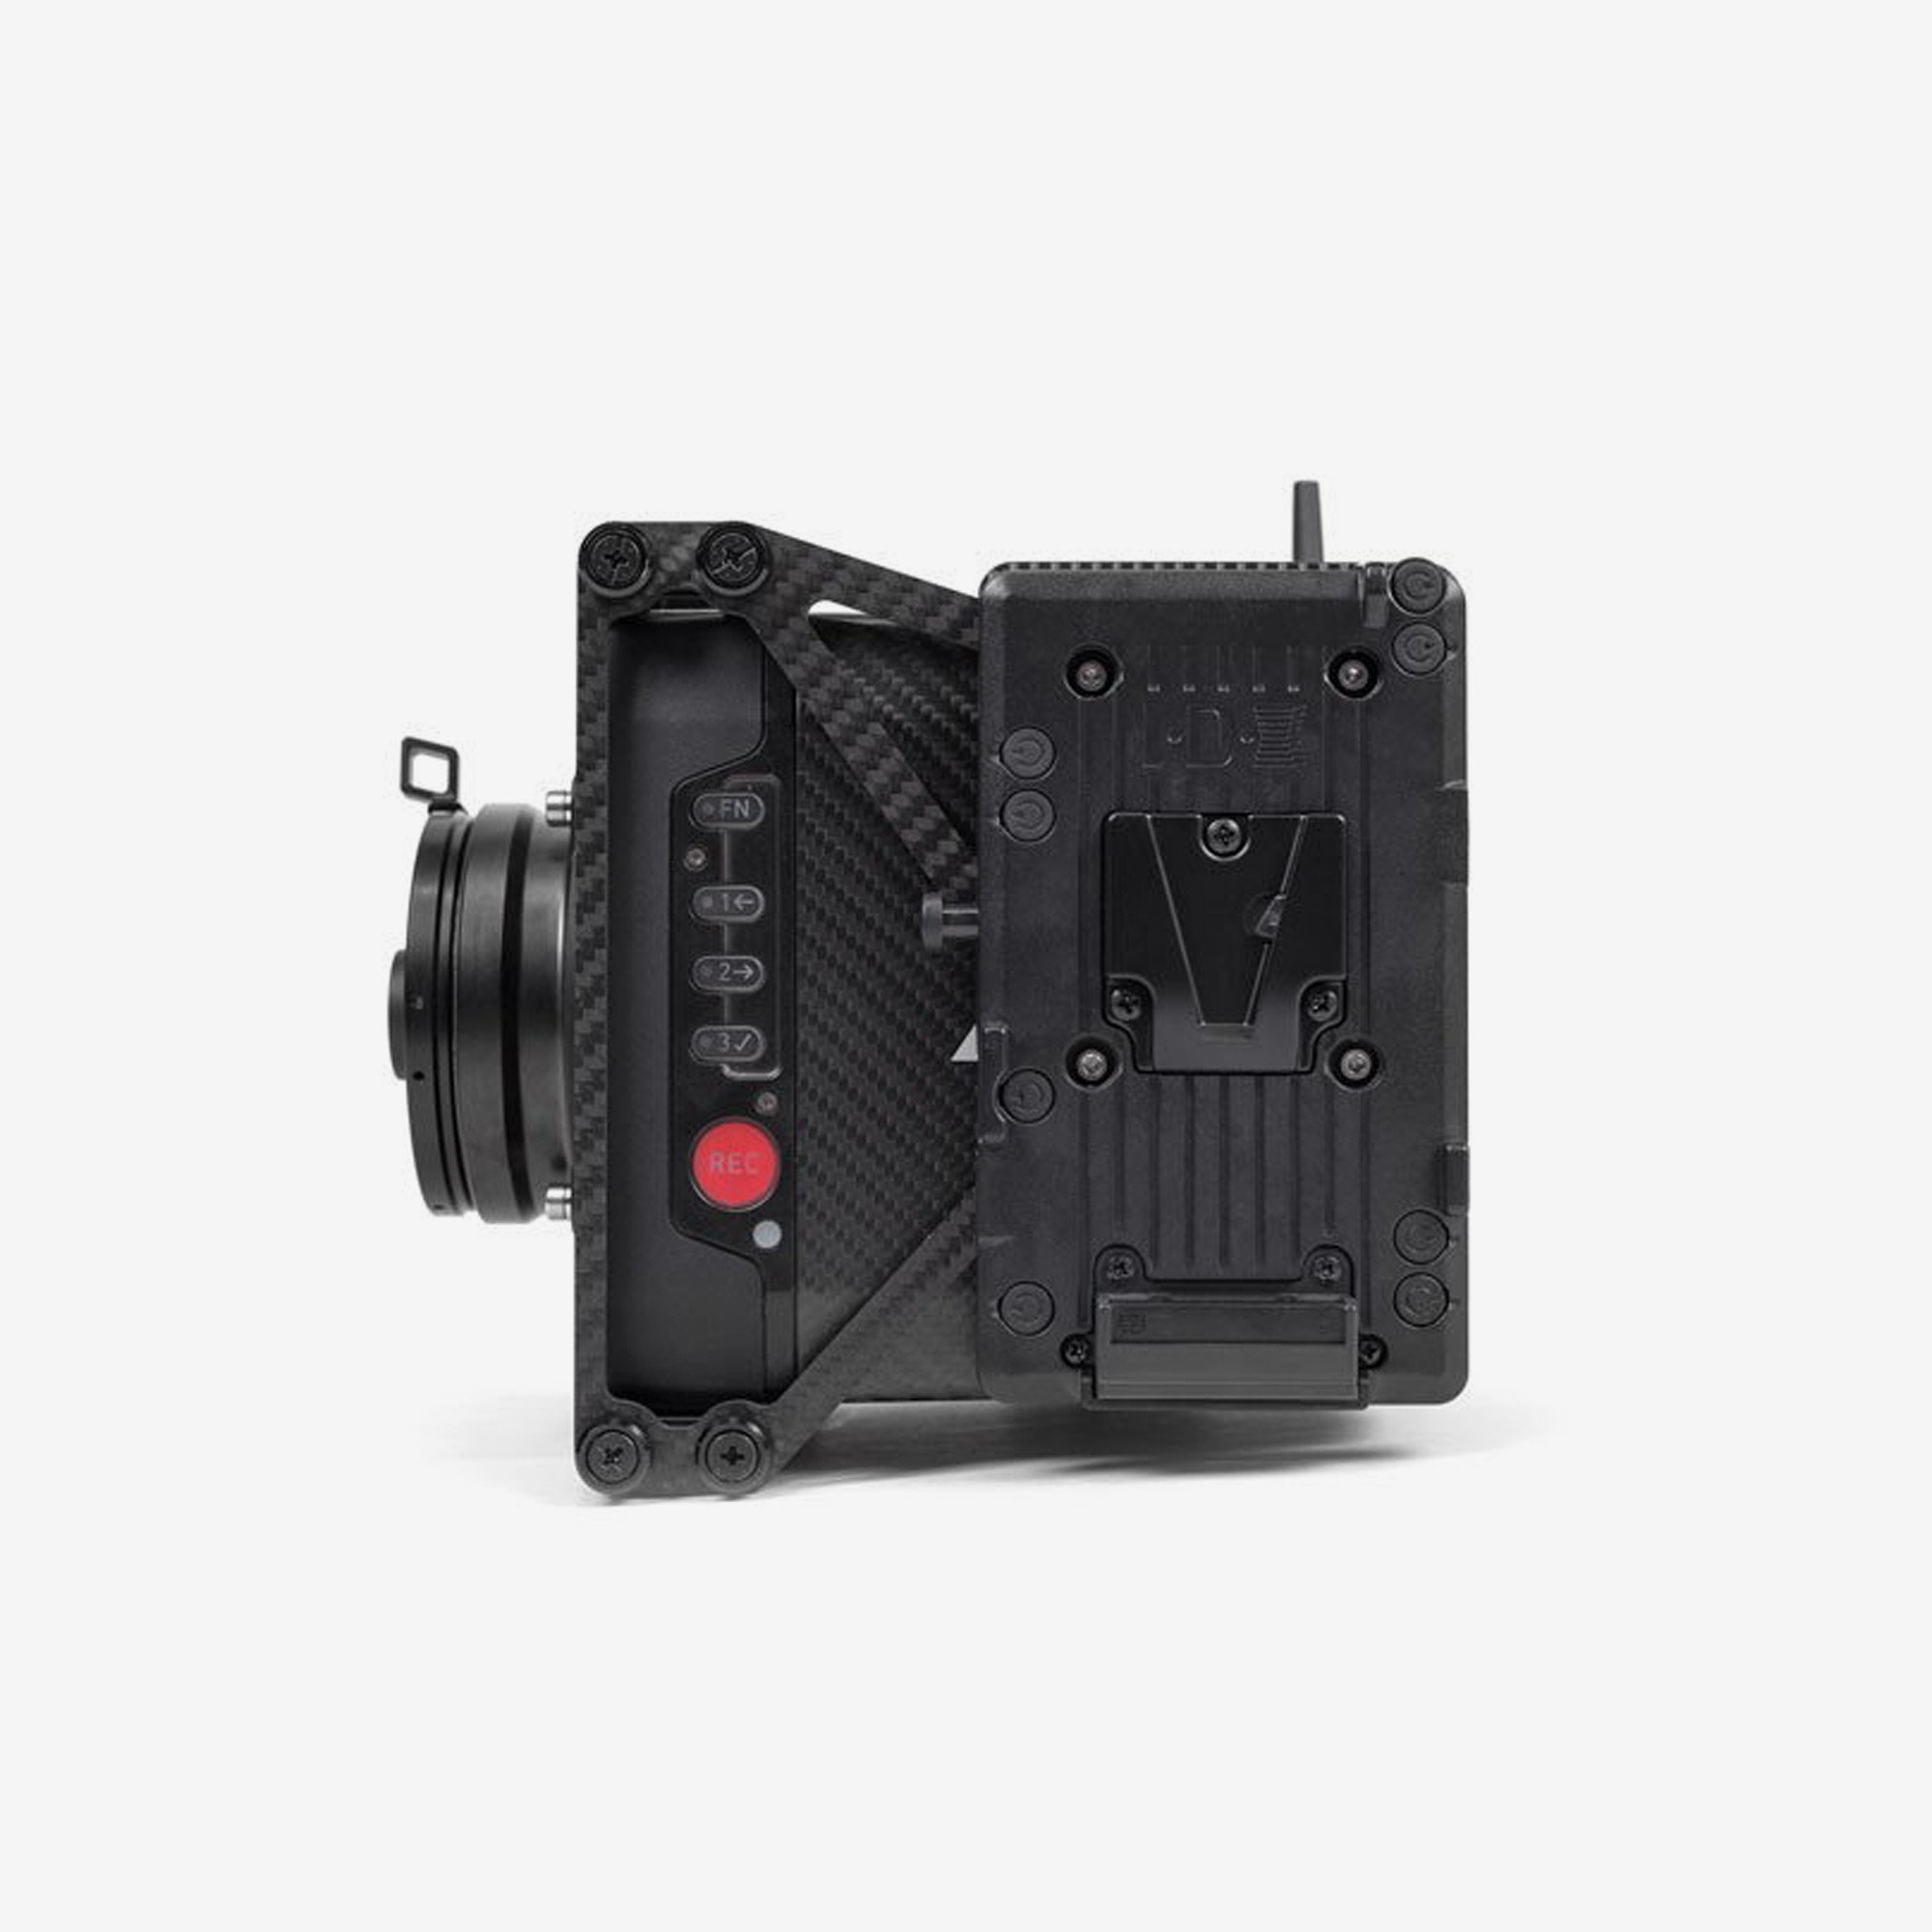 MōVI M5 Adjustable Top Camera Plate